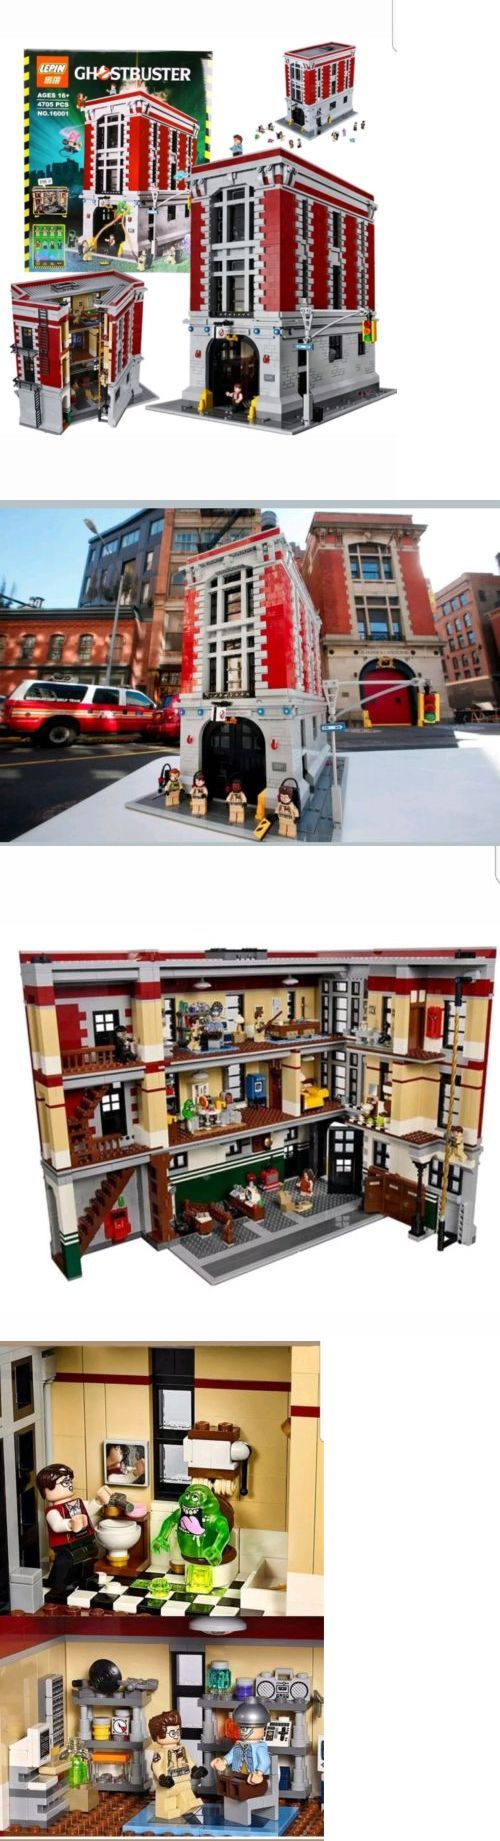 Dana S Apartment Building Ghostbusters best 25+ ghostbusters building ideas on pinterest | ghostbusters